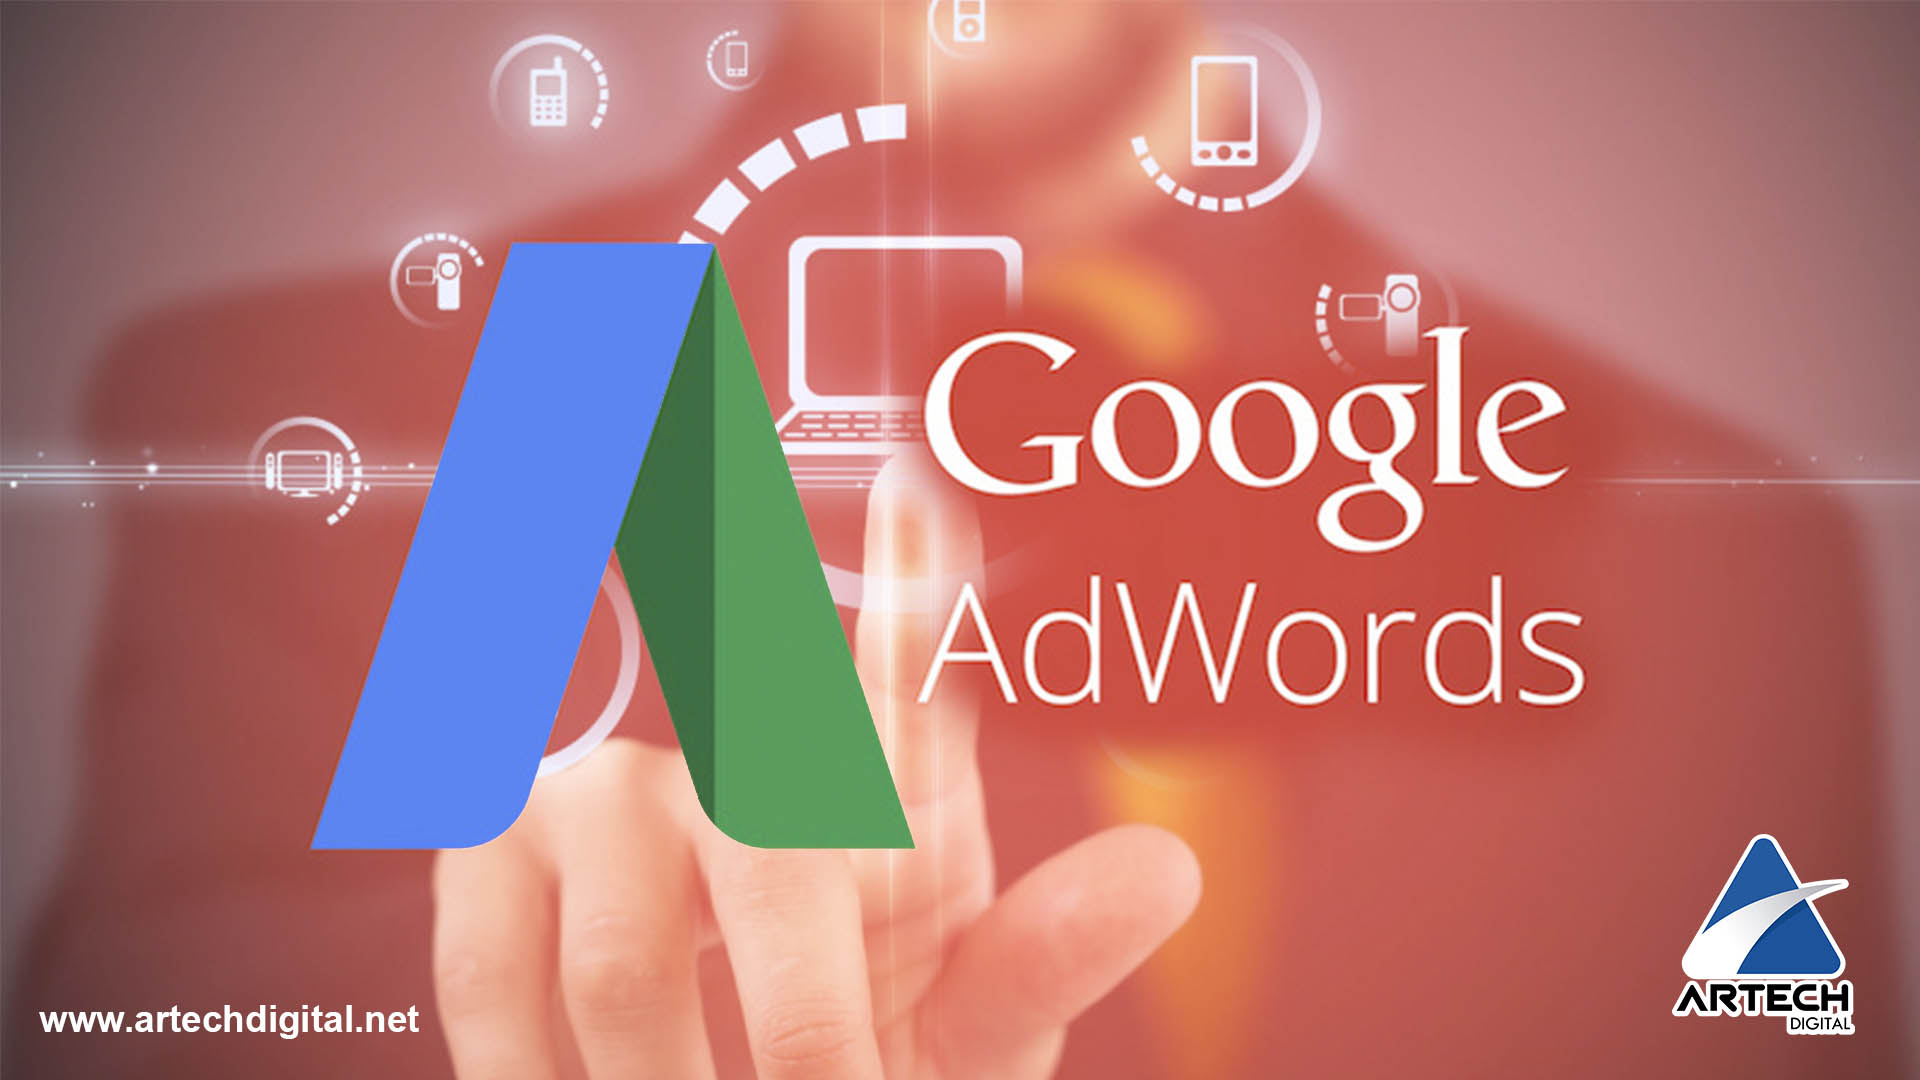 Ventajas de Google Adwords, ideal para tus campañas